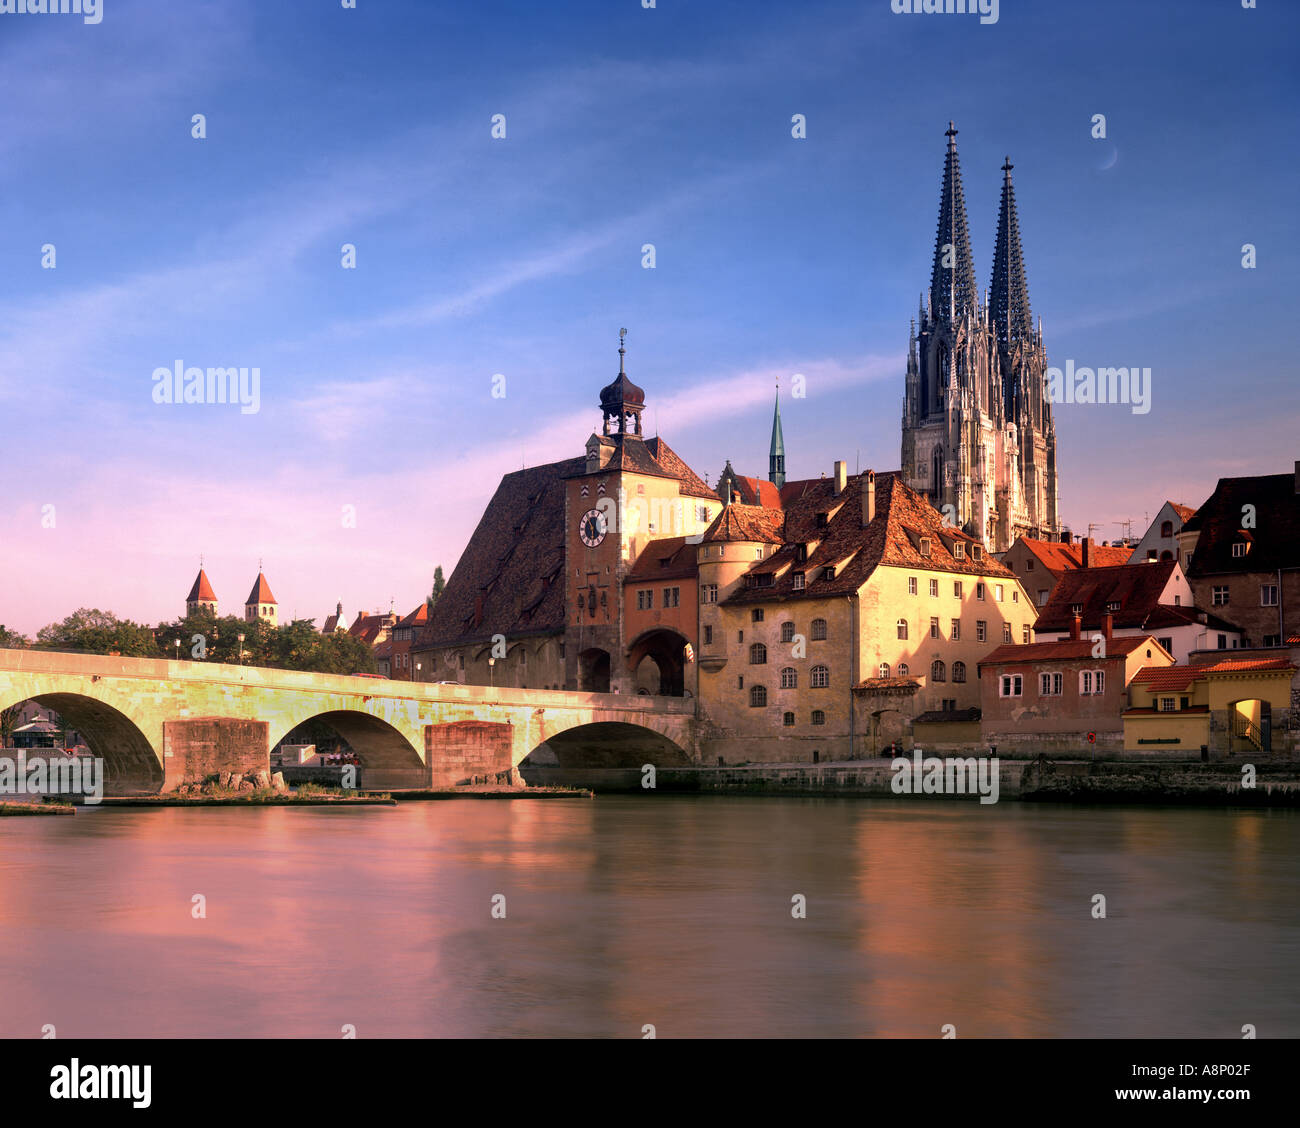 DE - BAVARIA: Regensburg, St. Peter's Cathedral and historic Stone Bridge - Stock Image